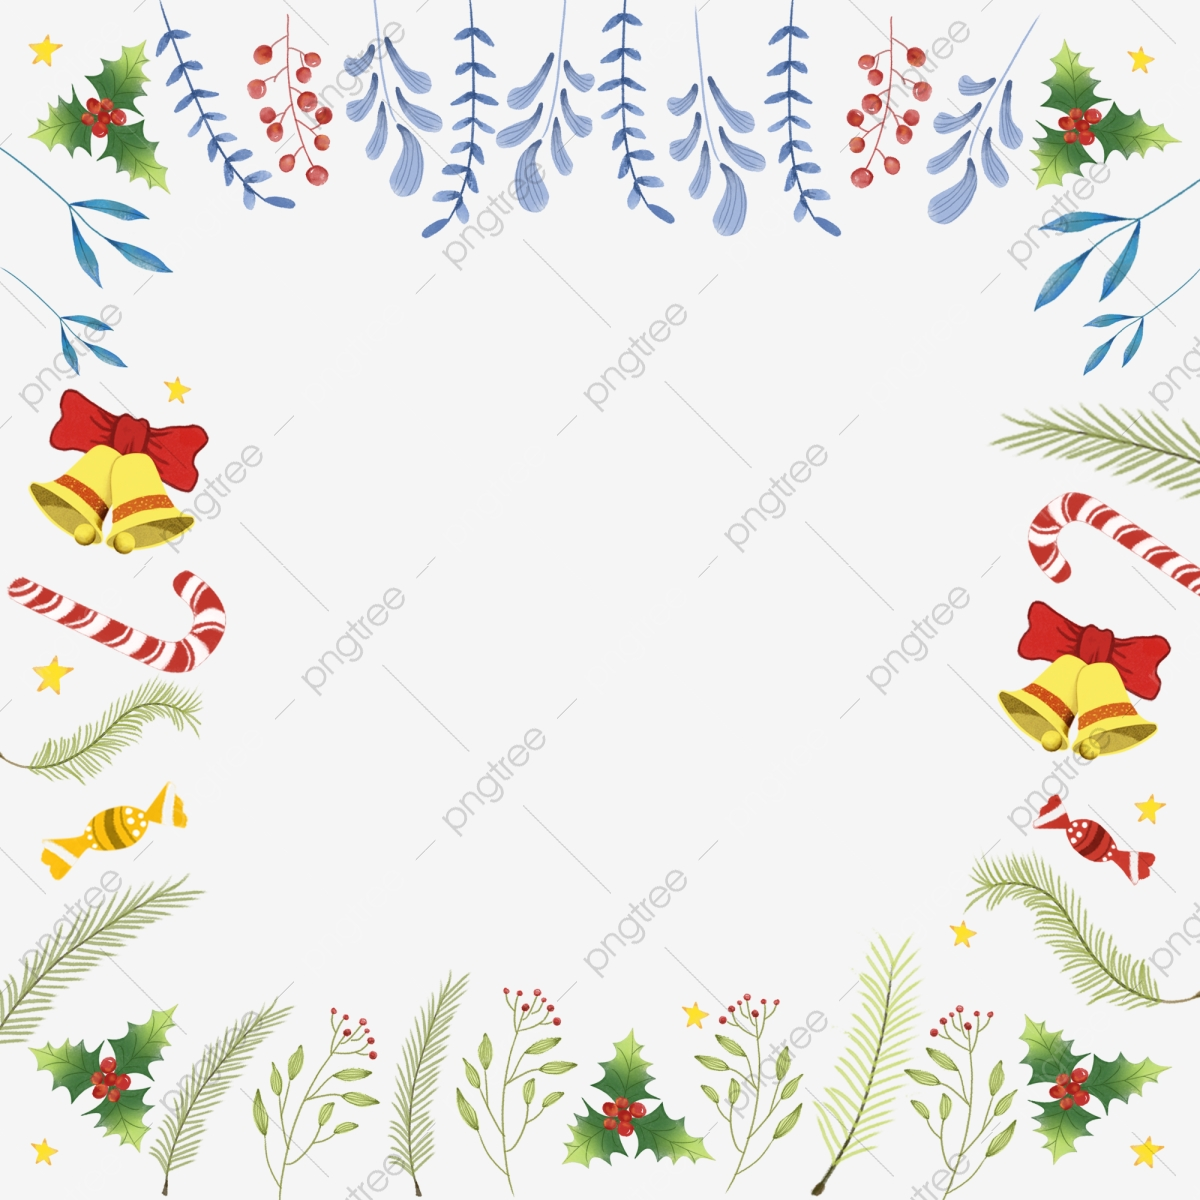 Christmas Candy Border, Christmas, Christmas Border, Candy PNG.